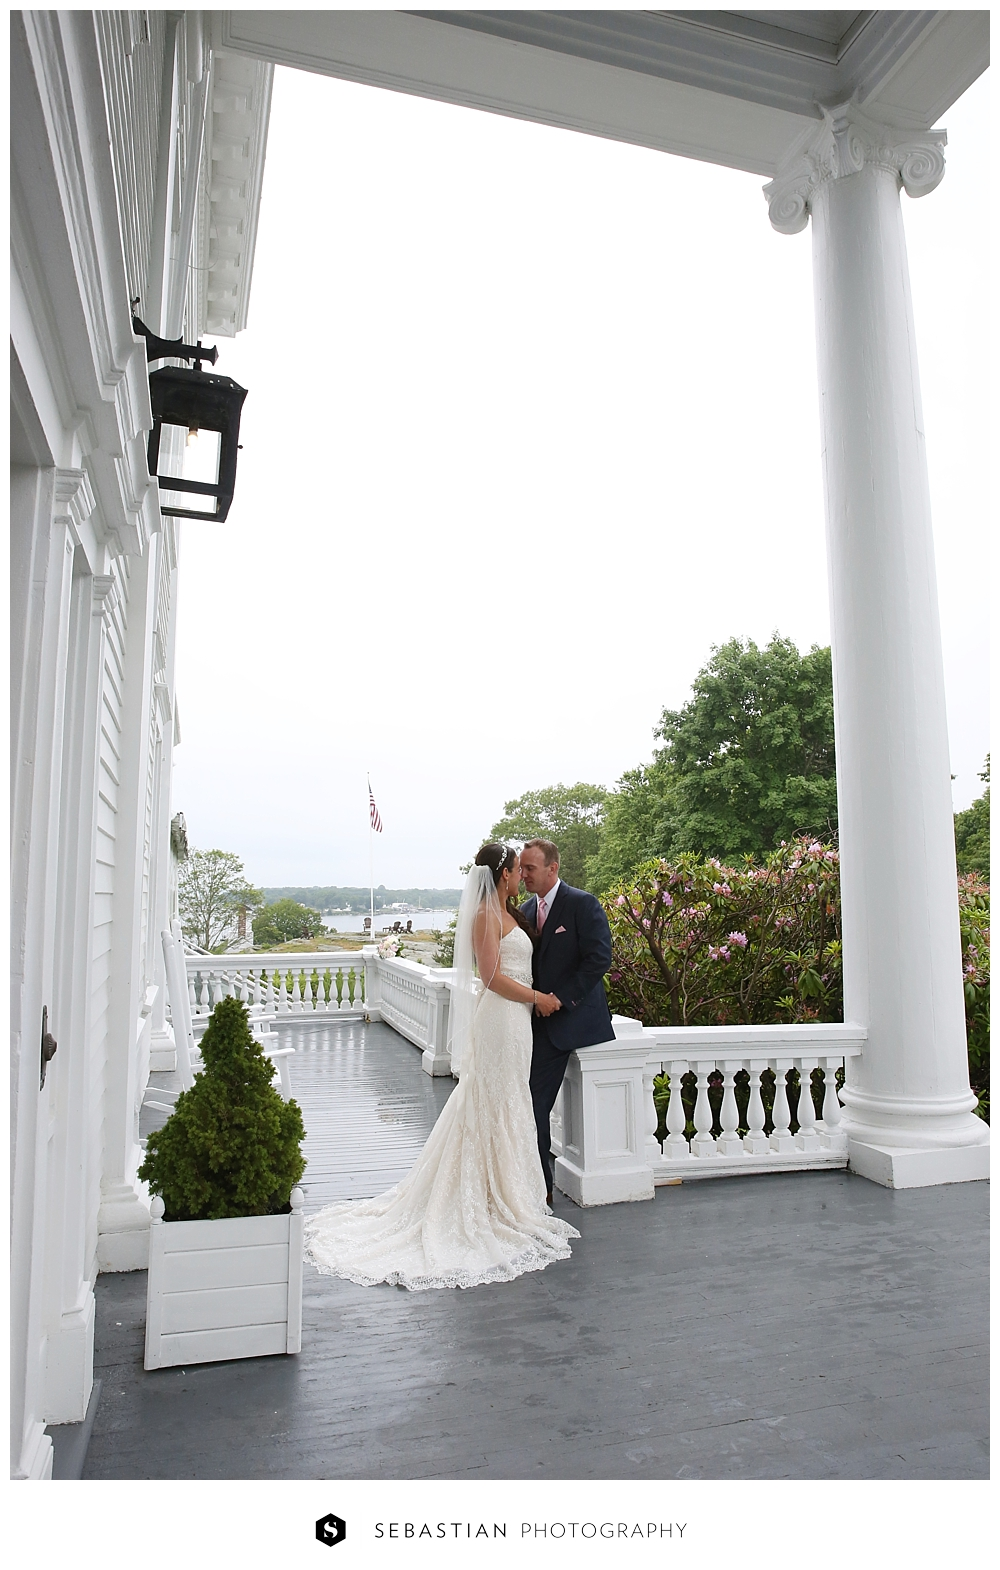 Sebastian_Photography_CT Weddidng Photographer_Outdoor Wedding_The Inn at Mystic_WEDDING AT HALEY MANSION_outdoor wedding_6039.jpg